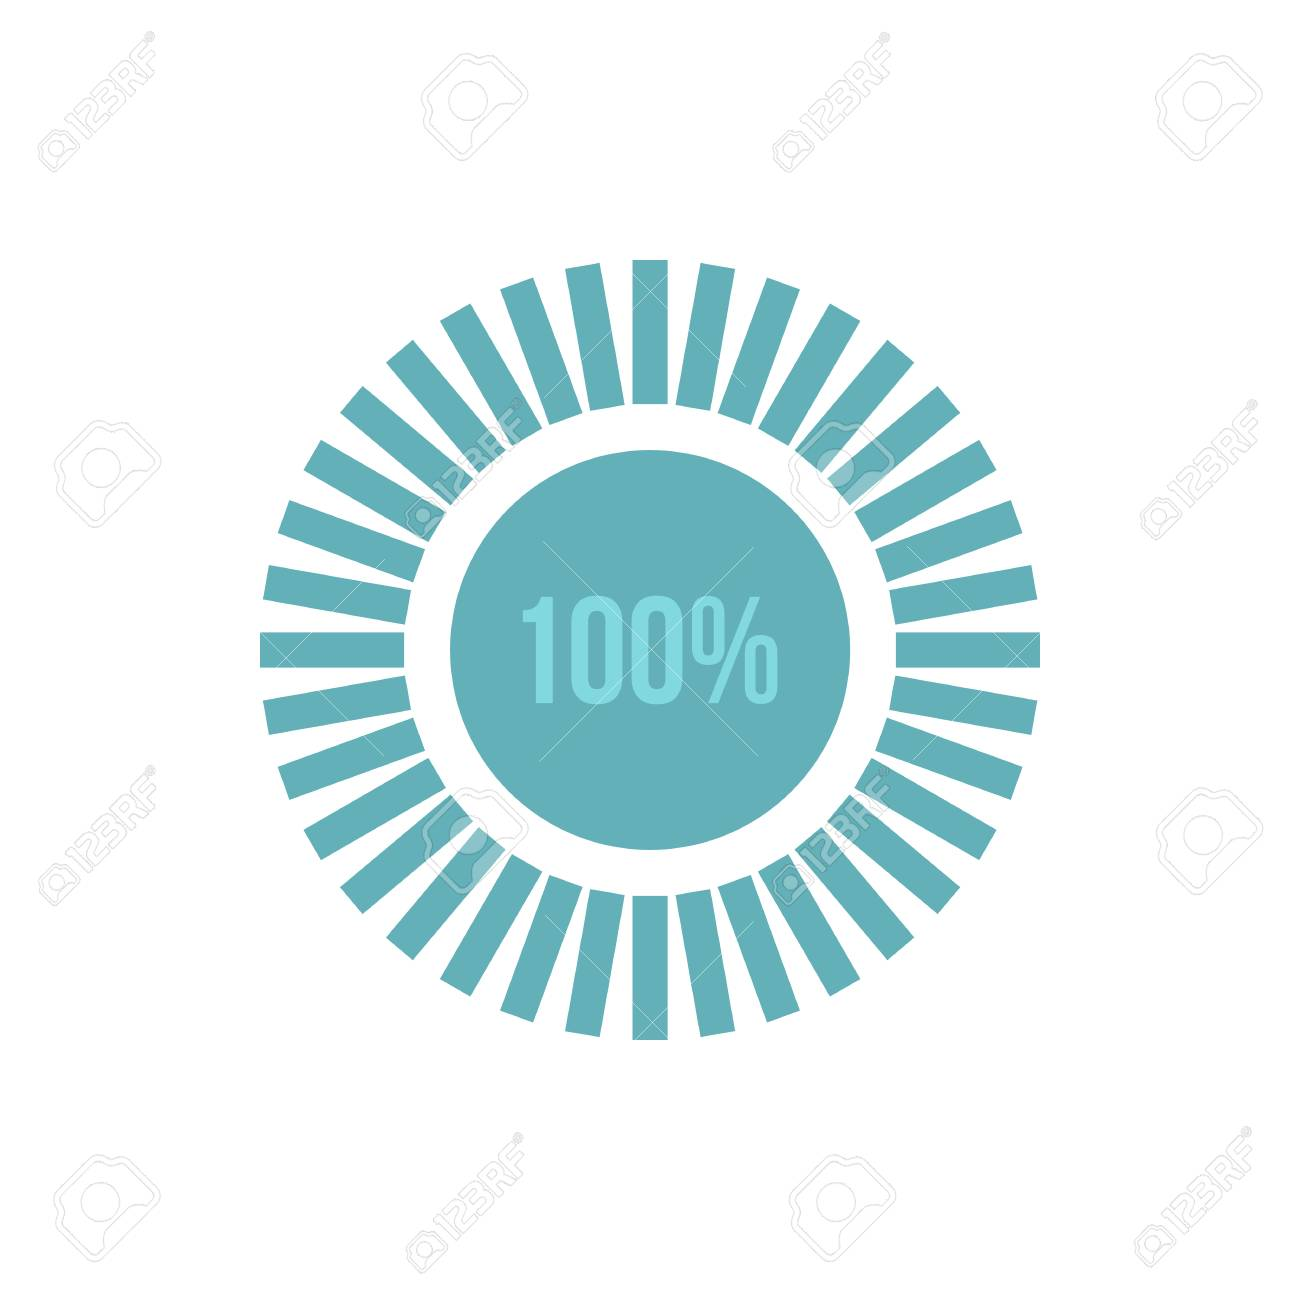 Sign 100 download icon in flat style isolated on white background sign 100 download icon in flat style isolated on white background loading symbol vector illustration biocorpaavc Image collections